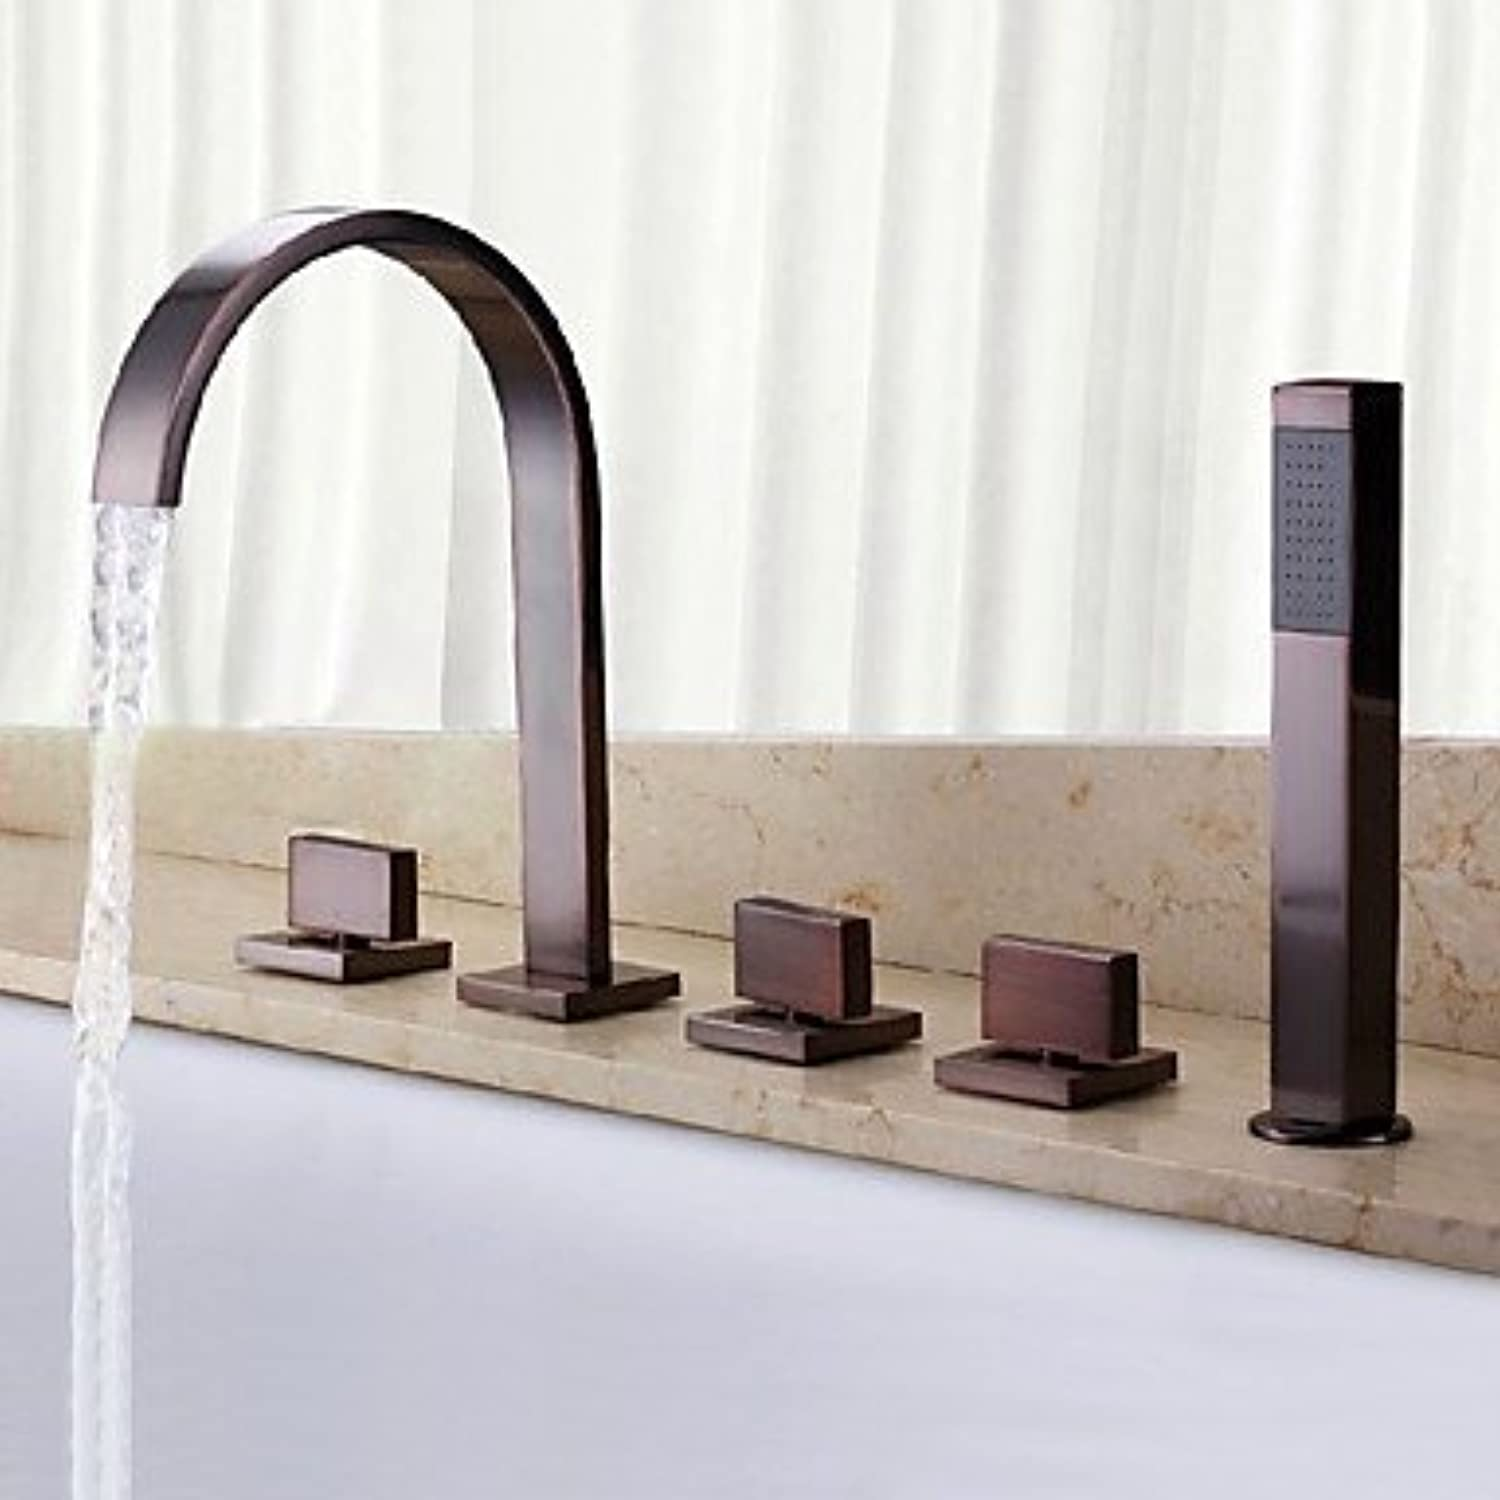 FYios Shower & Bath TapsAntique Classic Widespread Waterfall Handshower Included withThree Handles Five HolesOil-rubbed Bronze Finish Bathroom Bathtub Faucet Set